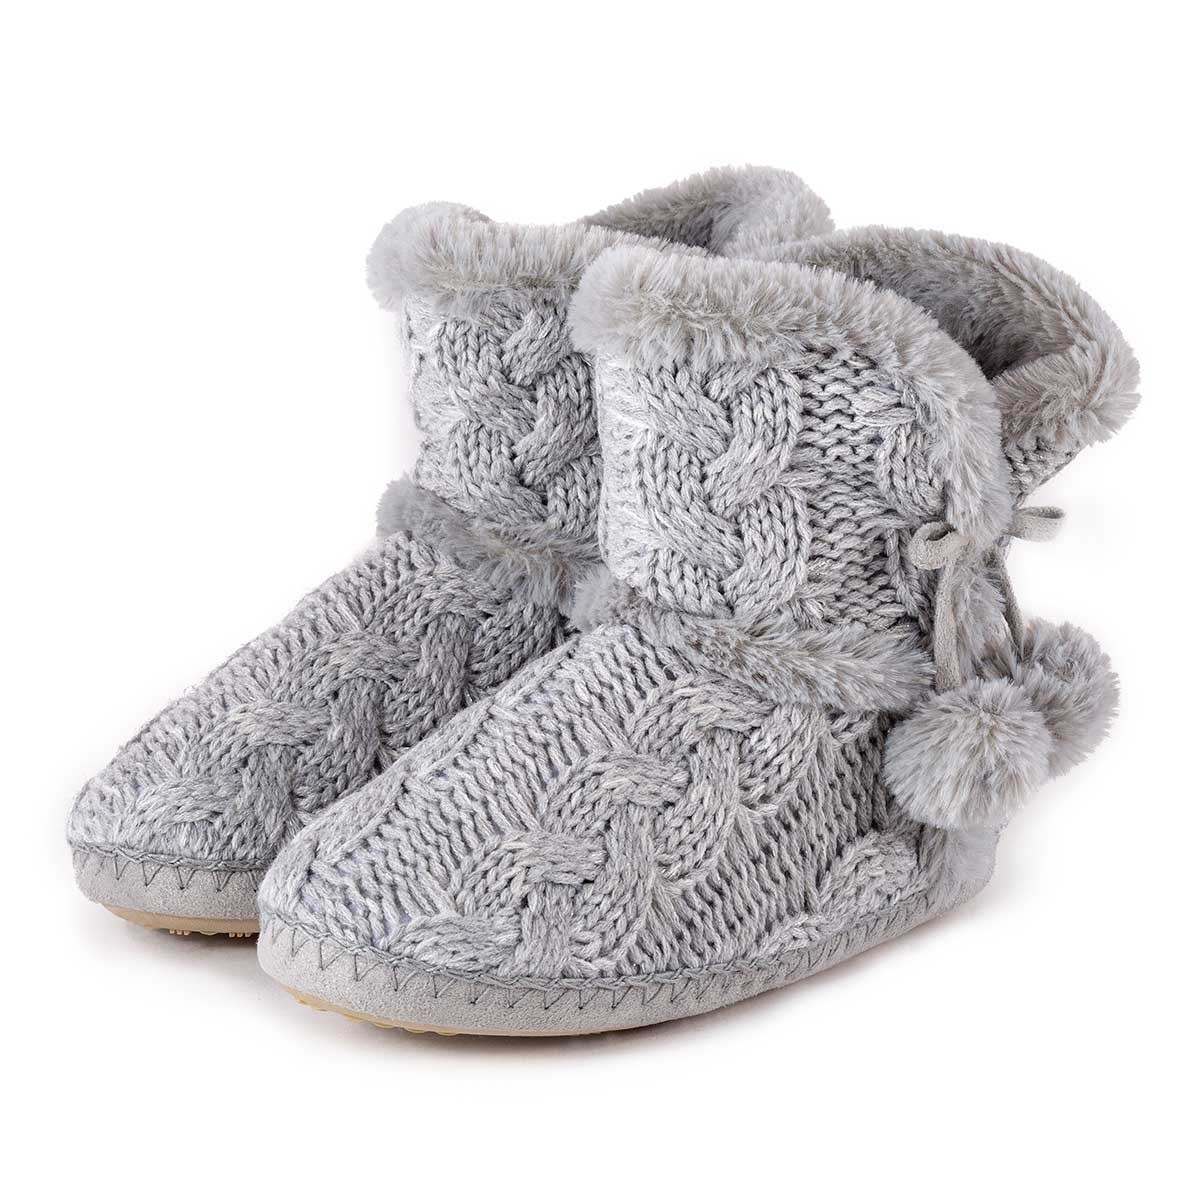 Best Of totes La S Cable Knit Boot Slippers Knitted Slipper Boots Of Superb 41 Pics Knitted Slipper Boots